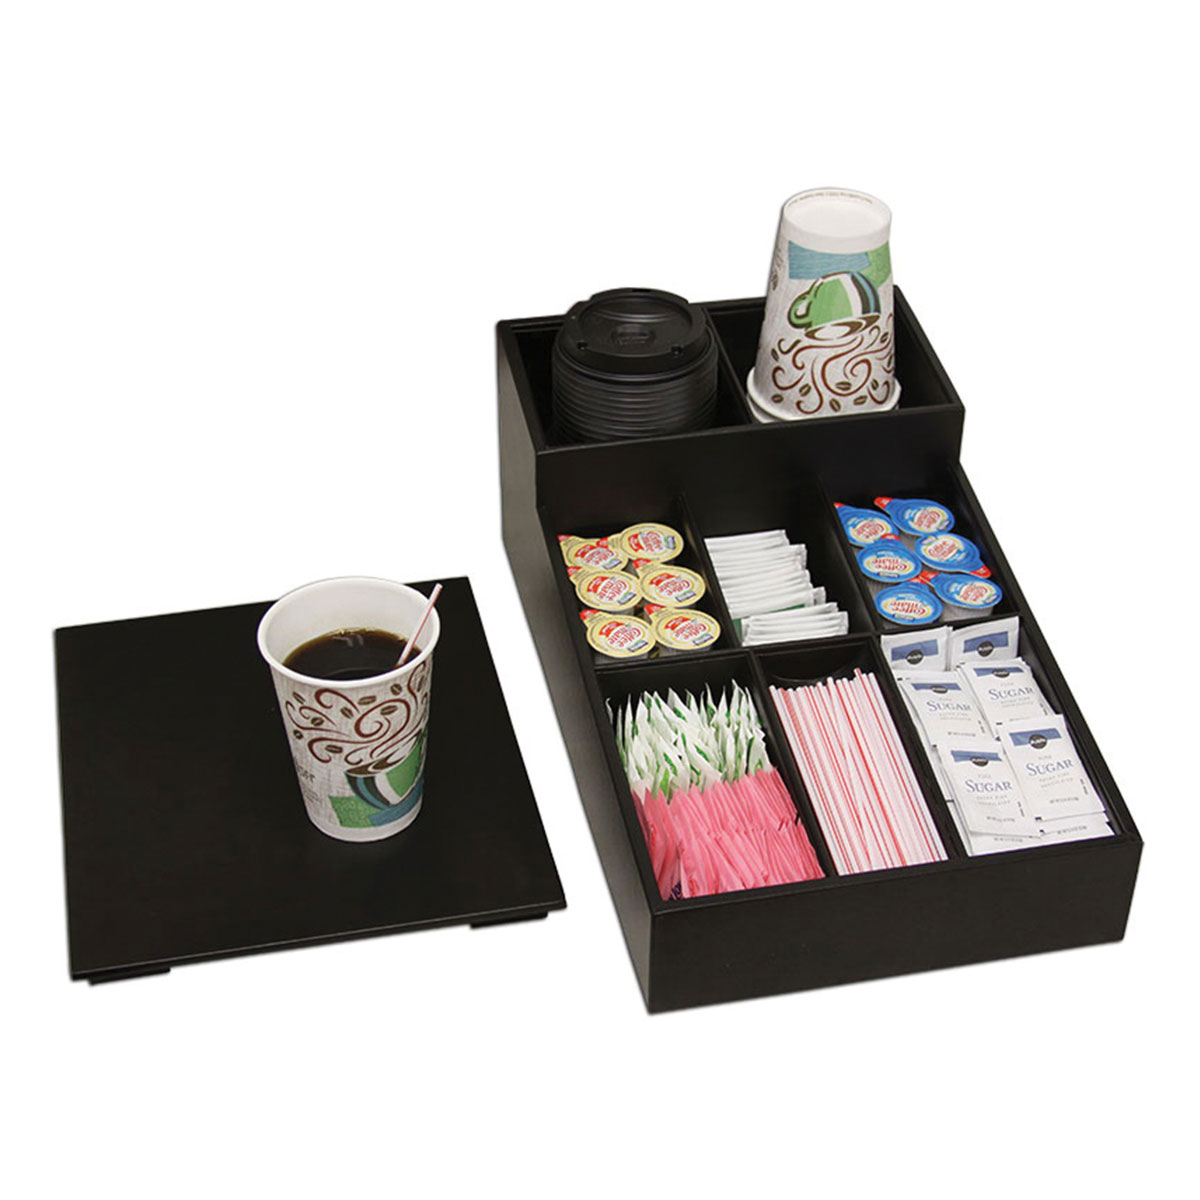 "Coffee & Condiment Organizer - Black 16"" L x 9 1/2"" W x 6"" H, Black Leatherette, Coffee & Condiment Organizer, 1/EA"